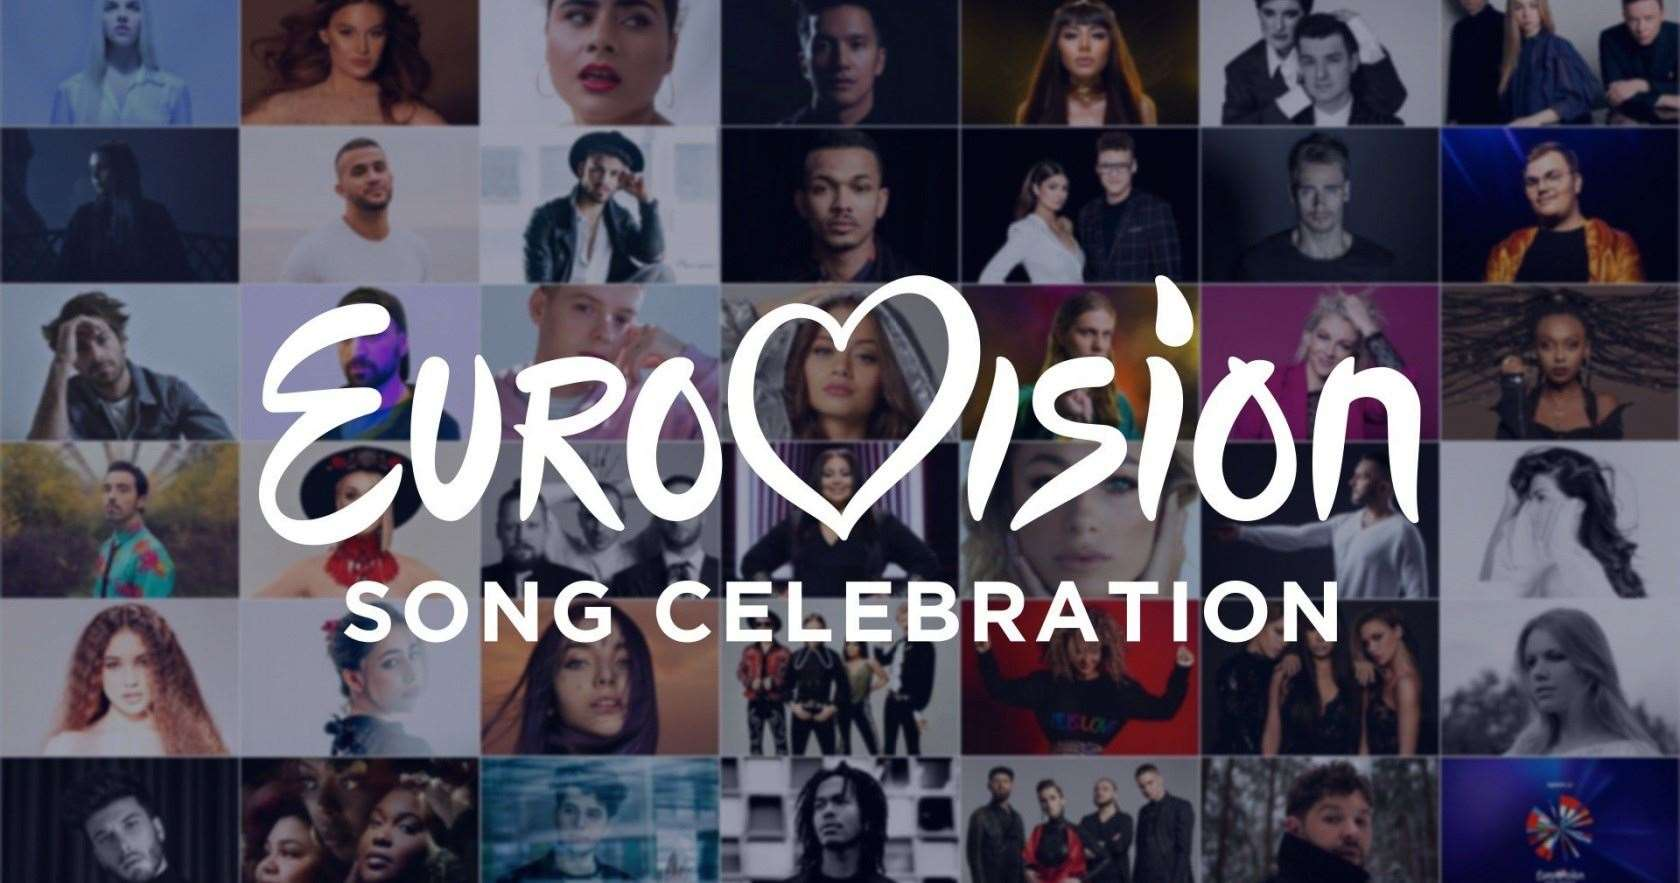 The EuroVision Song Celebration happens online next week